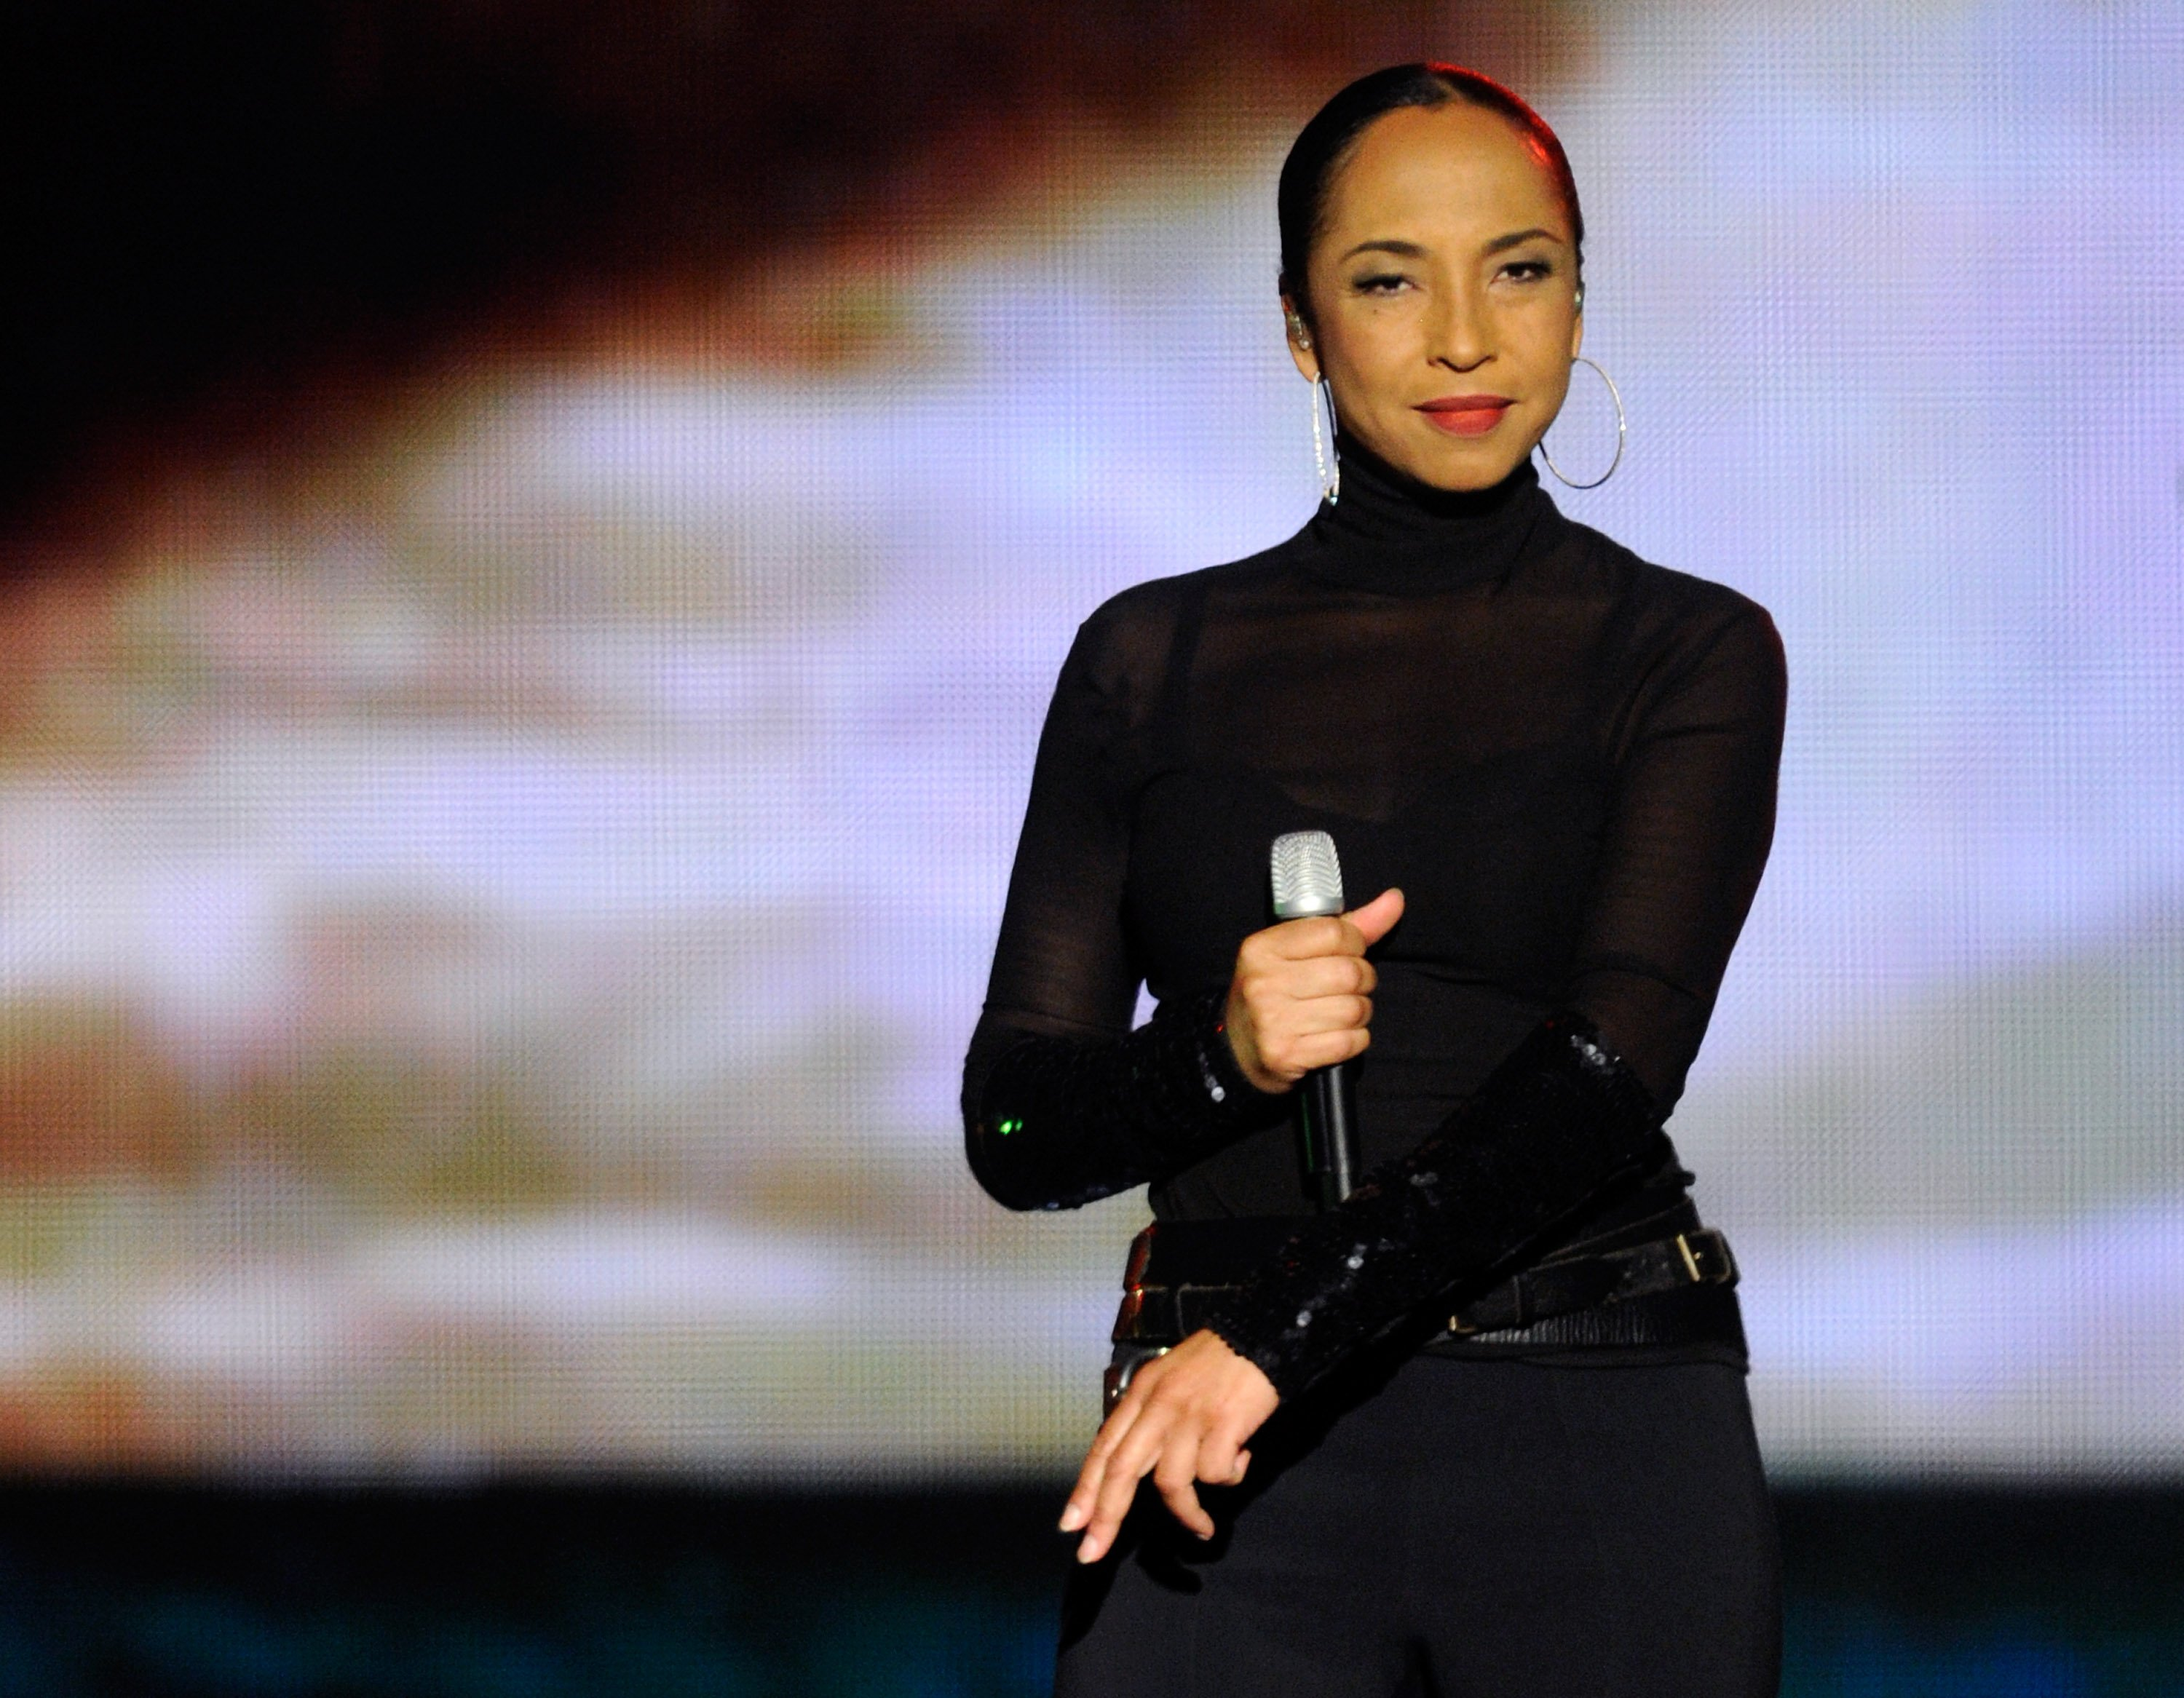 Sade on stage at the MGM Grand Garden Arena September 3, 2011 in Las Vegas, Nevada.   Source: Getty Images